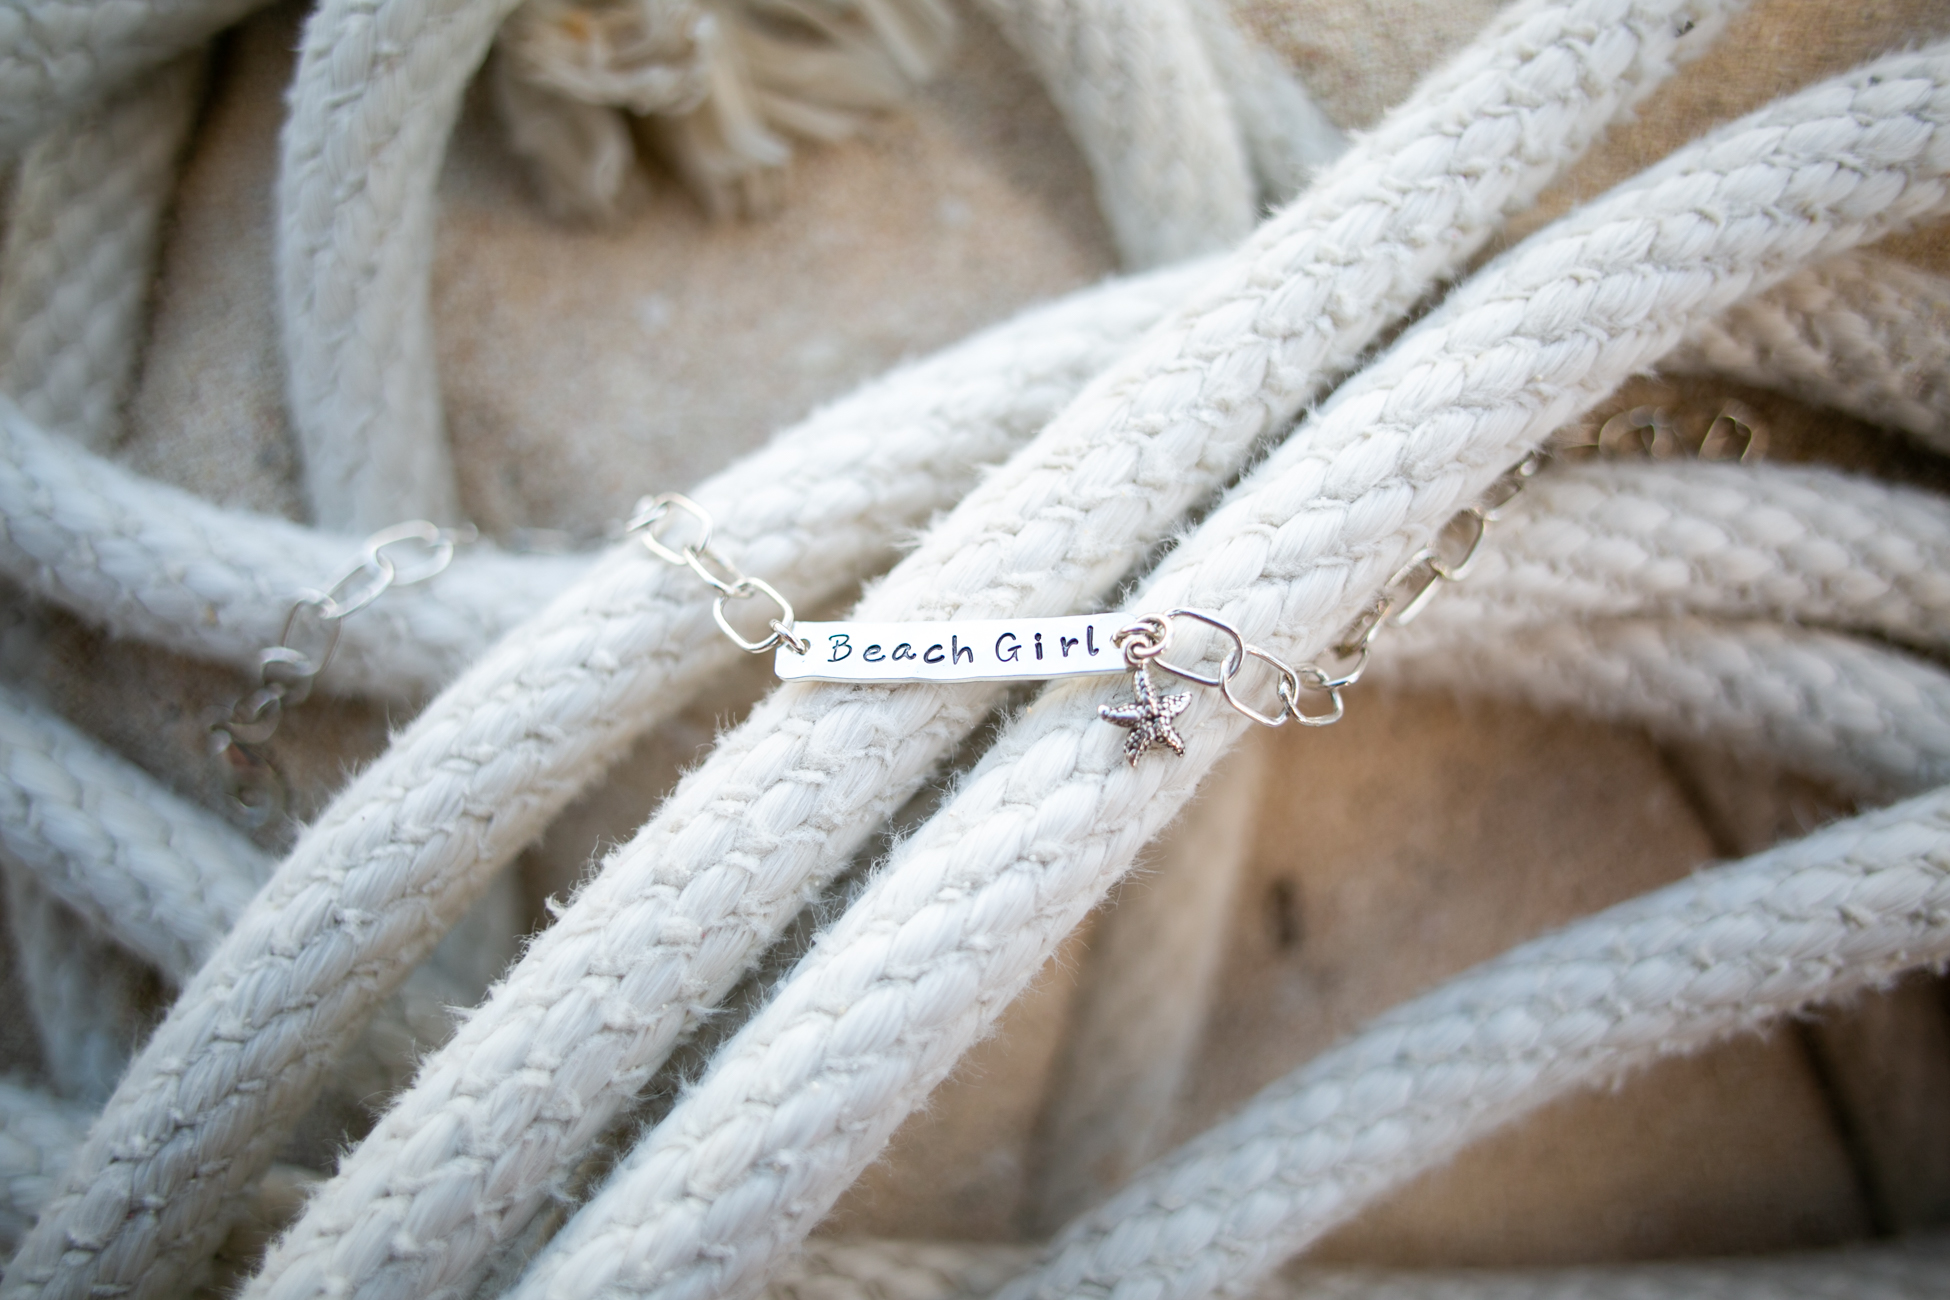 Beach girl anklet on nautical rope by  Tracy Tayan .